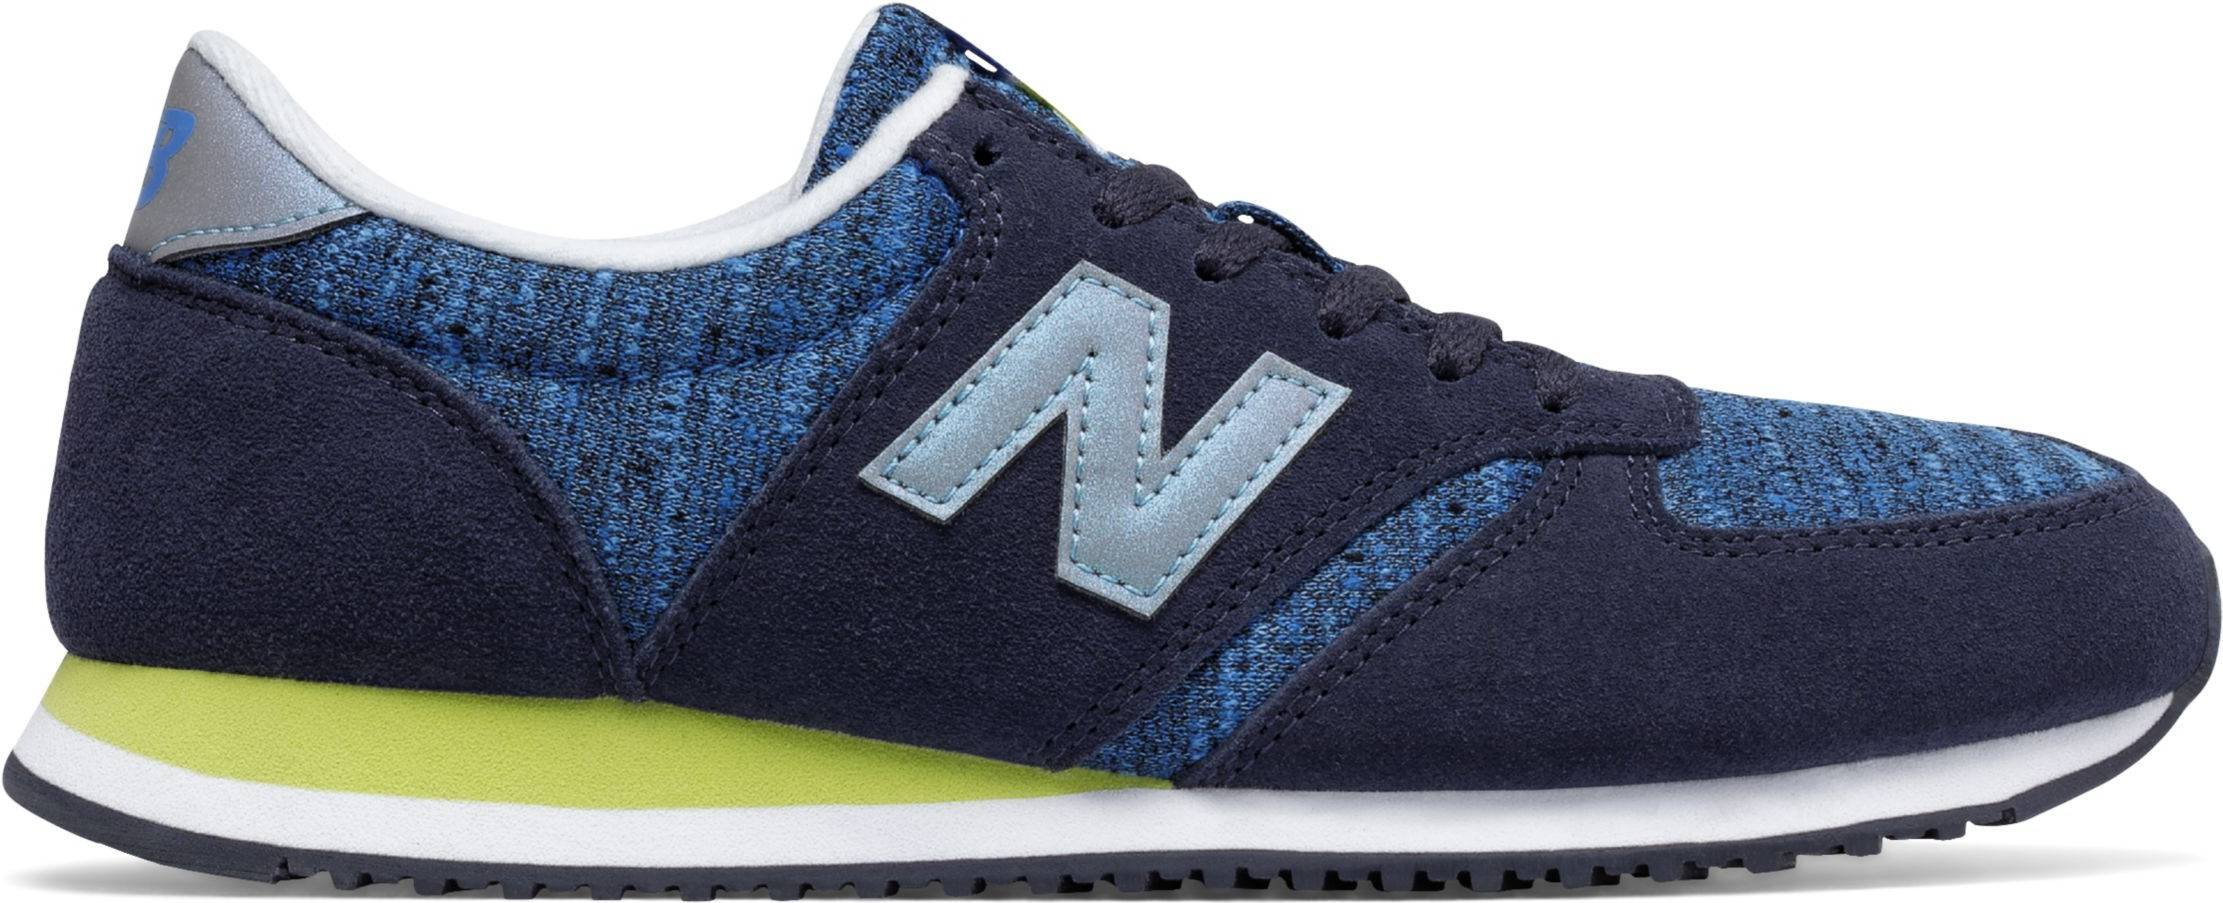 New Balance 420 sneakers in 6 colors (only $33) | RunRepeat